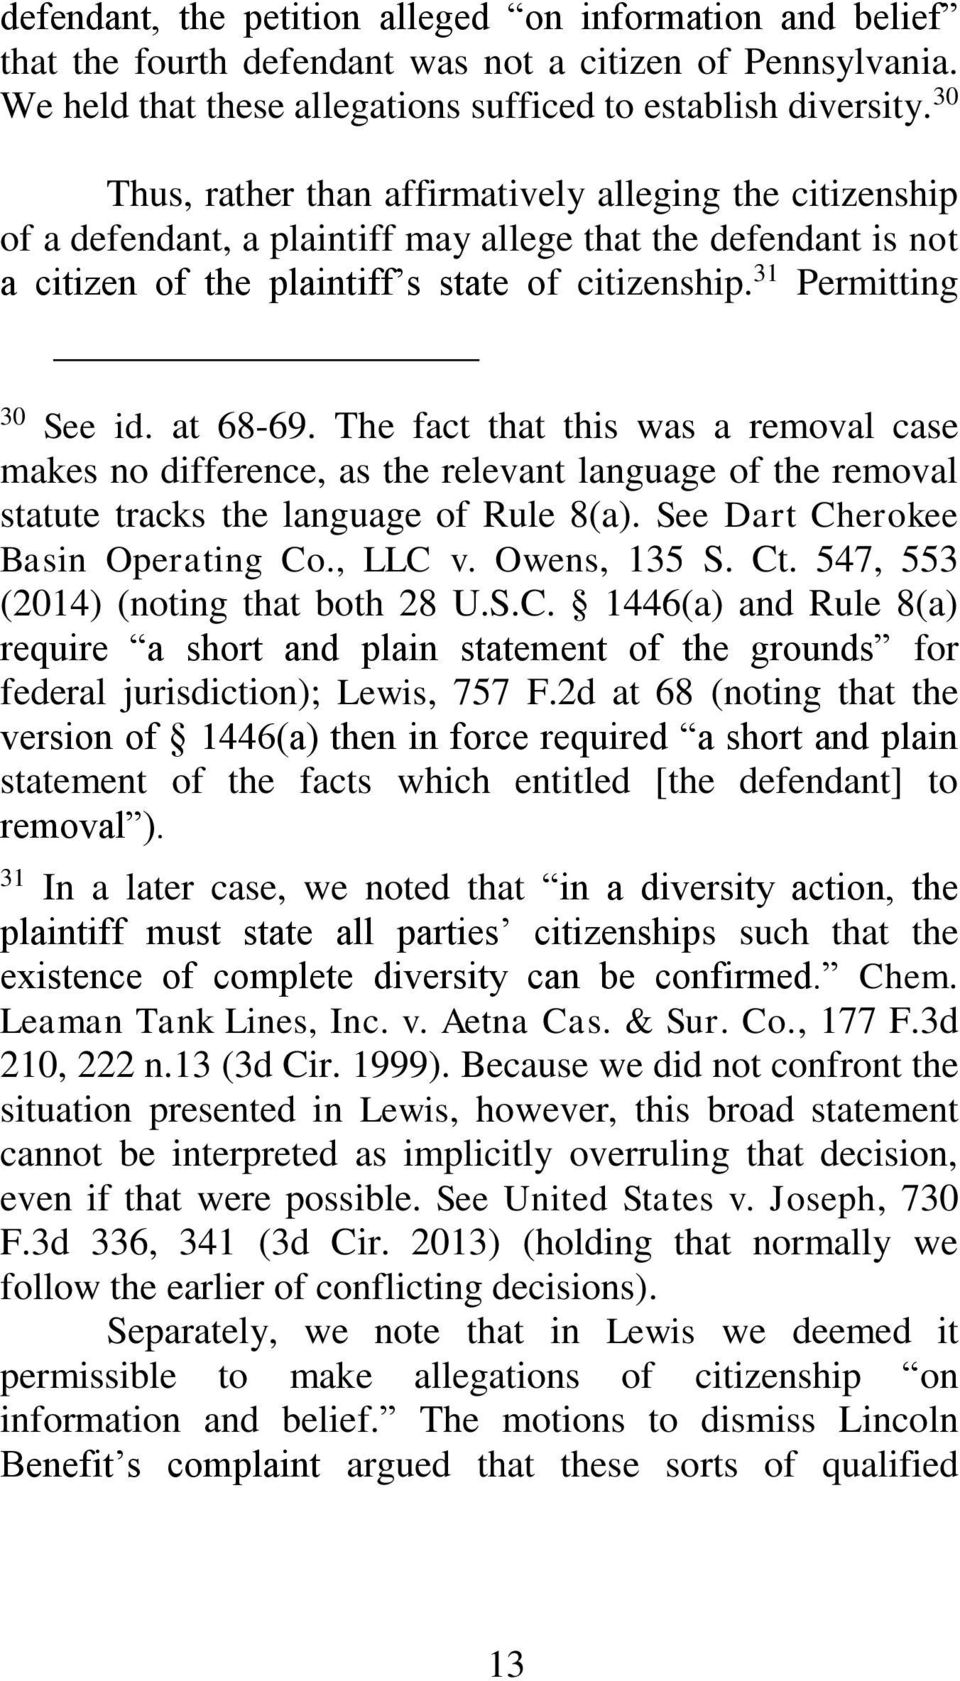 at 68-69. The fact that this was a removal case makes no difference, as the relevant language of the removal statute tracks the language of Rule 8(a). See Dart Cherokee Basin Operating Co., LLC v.